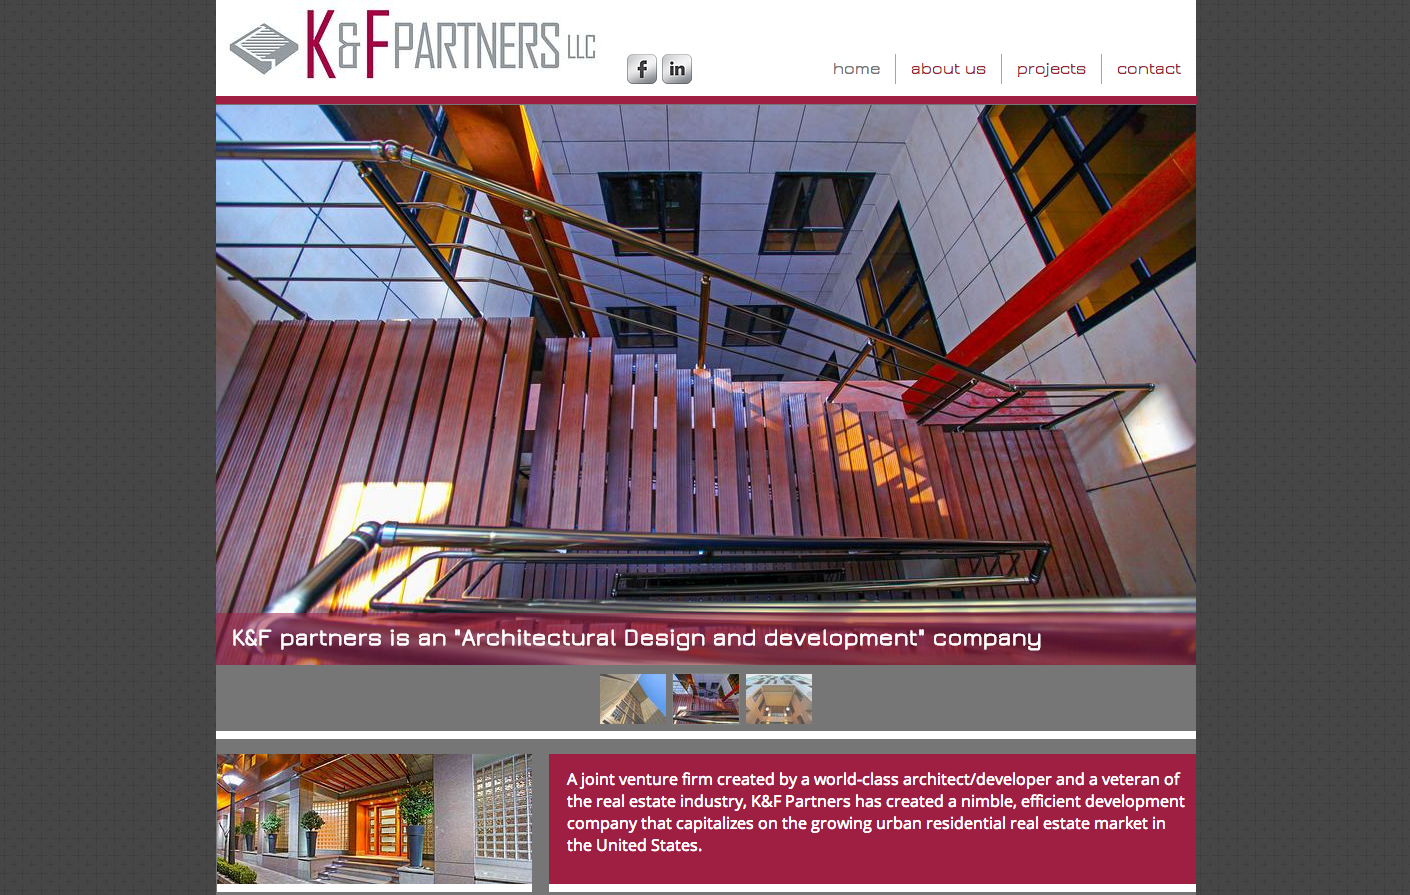 KnF Partners